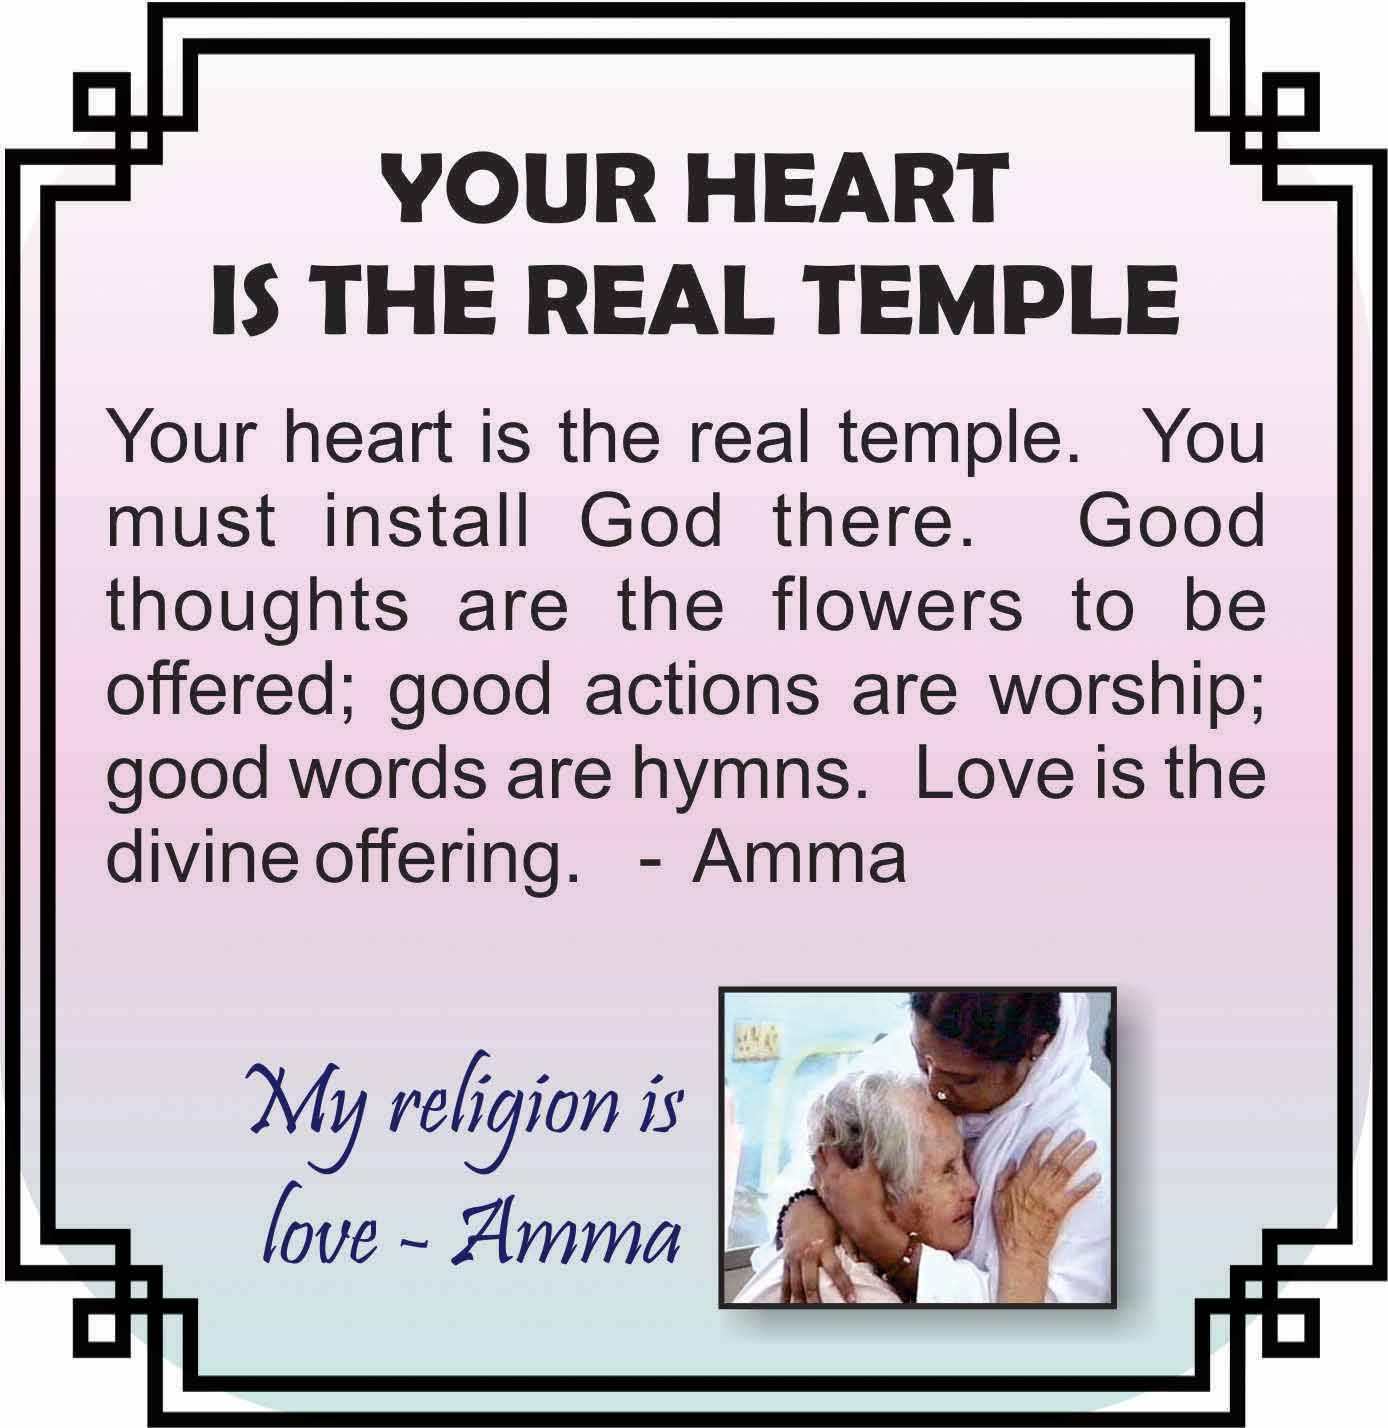 The heart is the temple